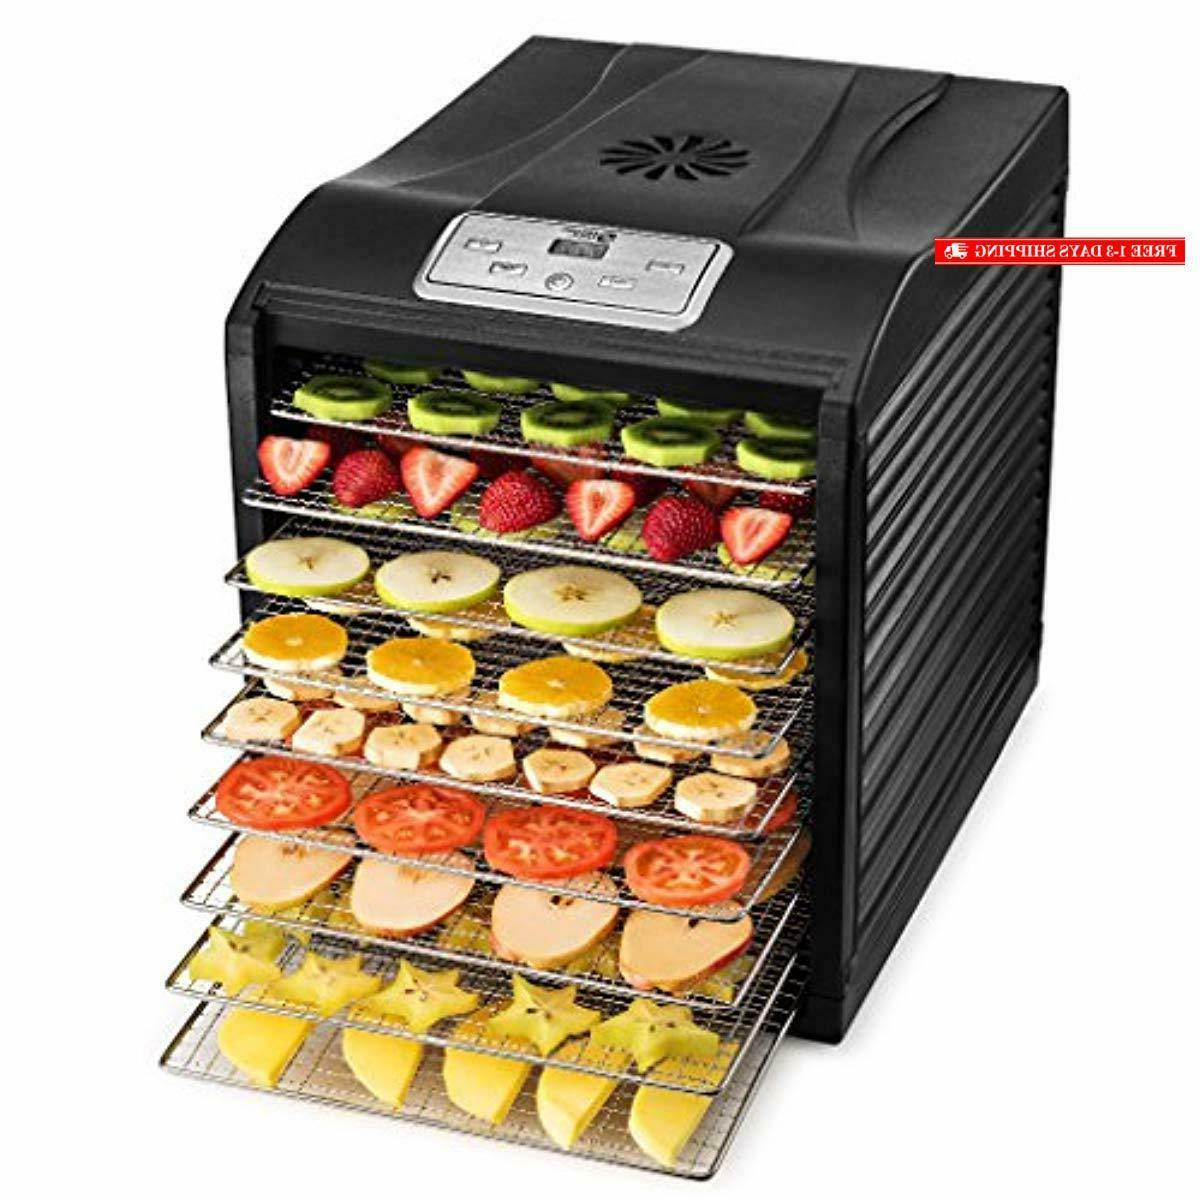 mill professional food dehydrator 9 stainless steel